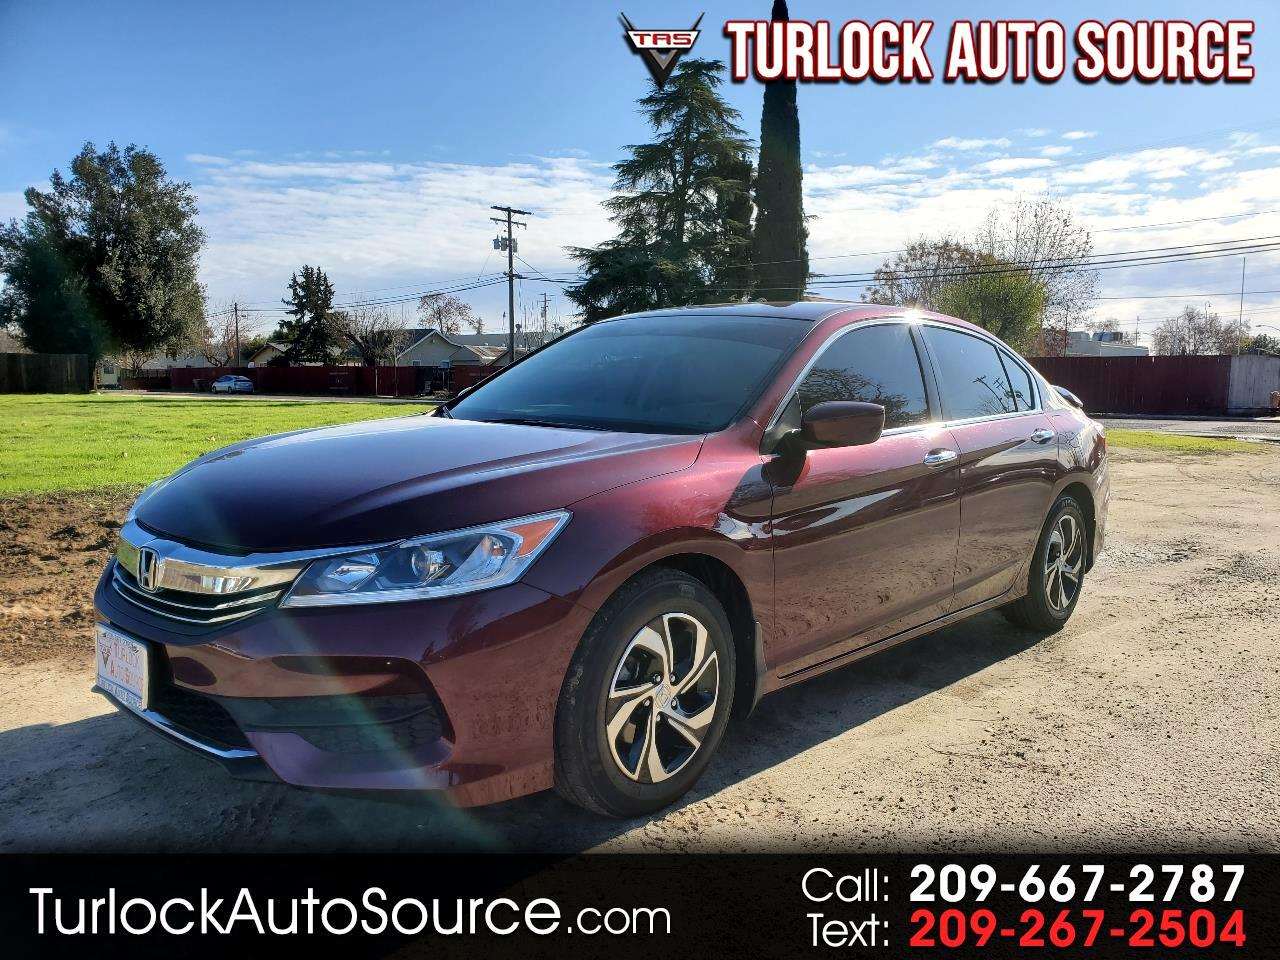 Honda Accord Sedan 4dr I4 CVT LX 2016